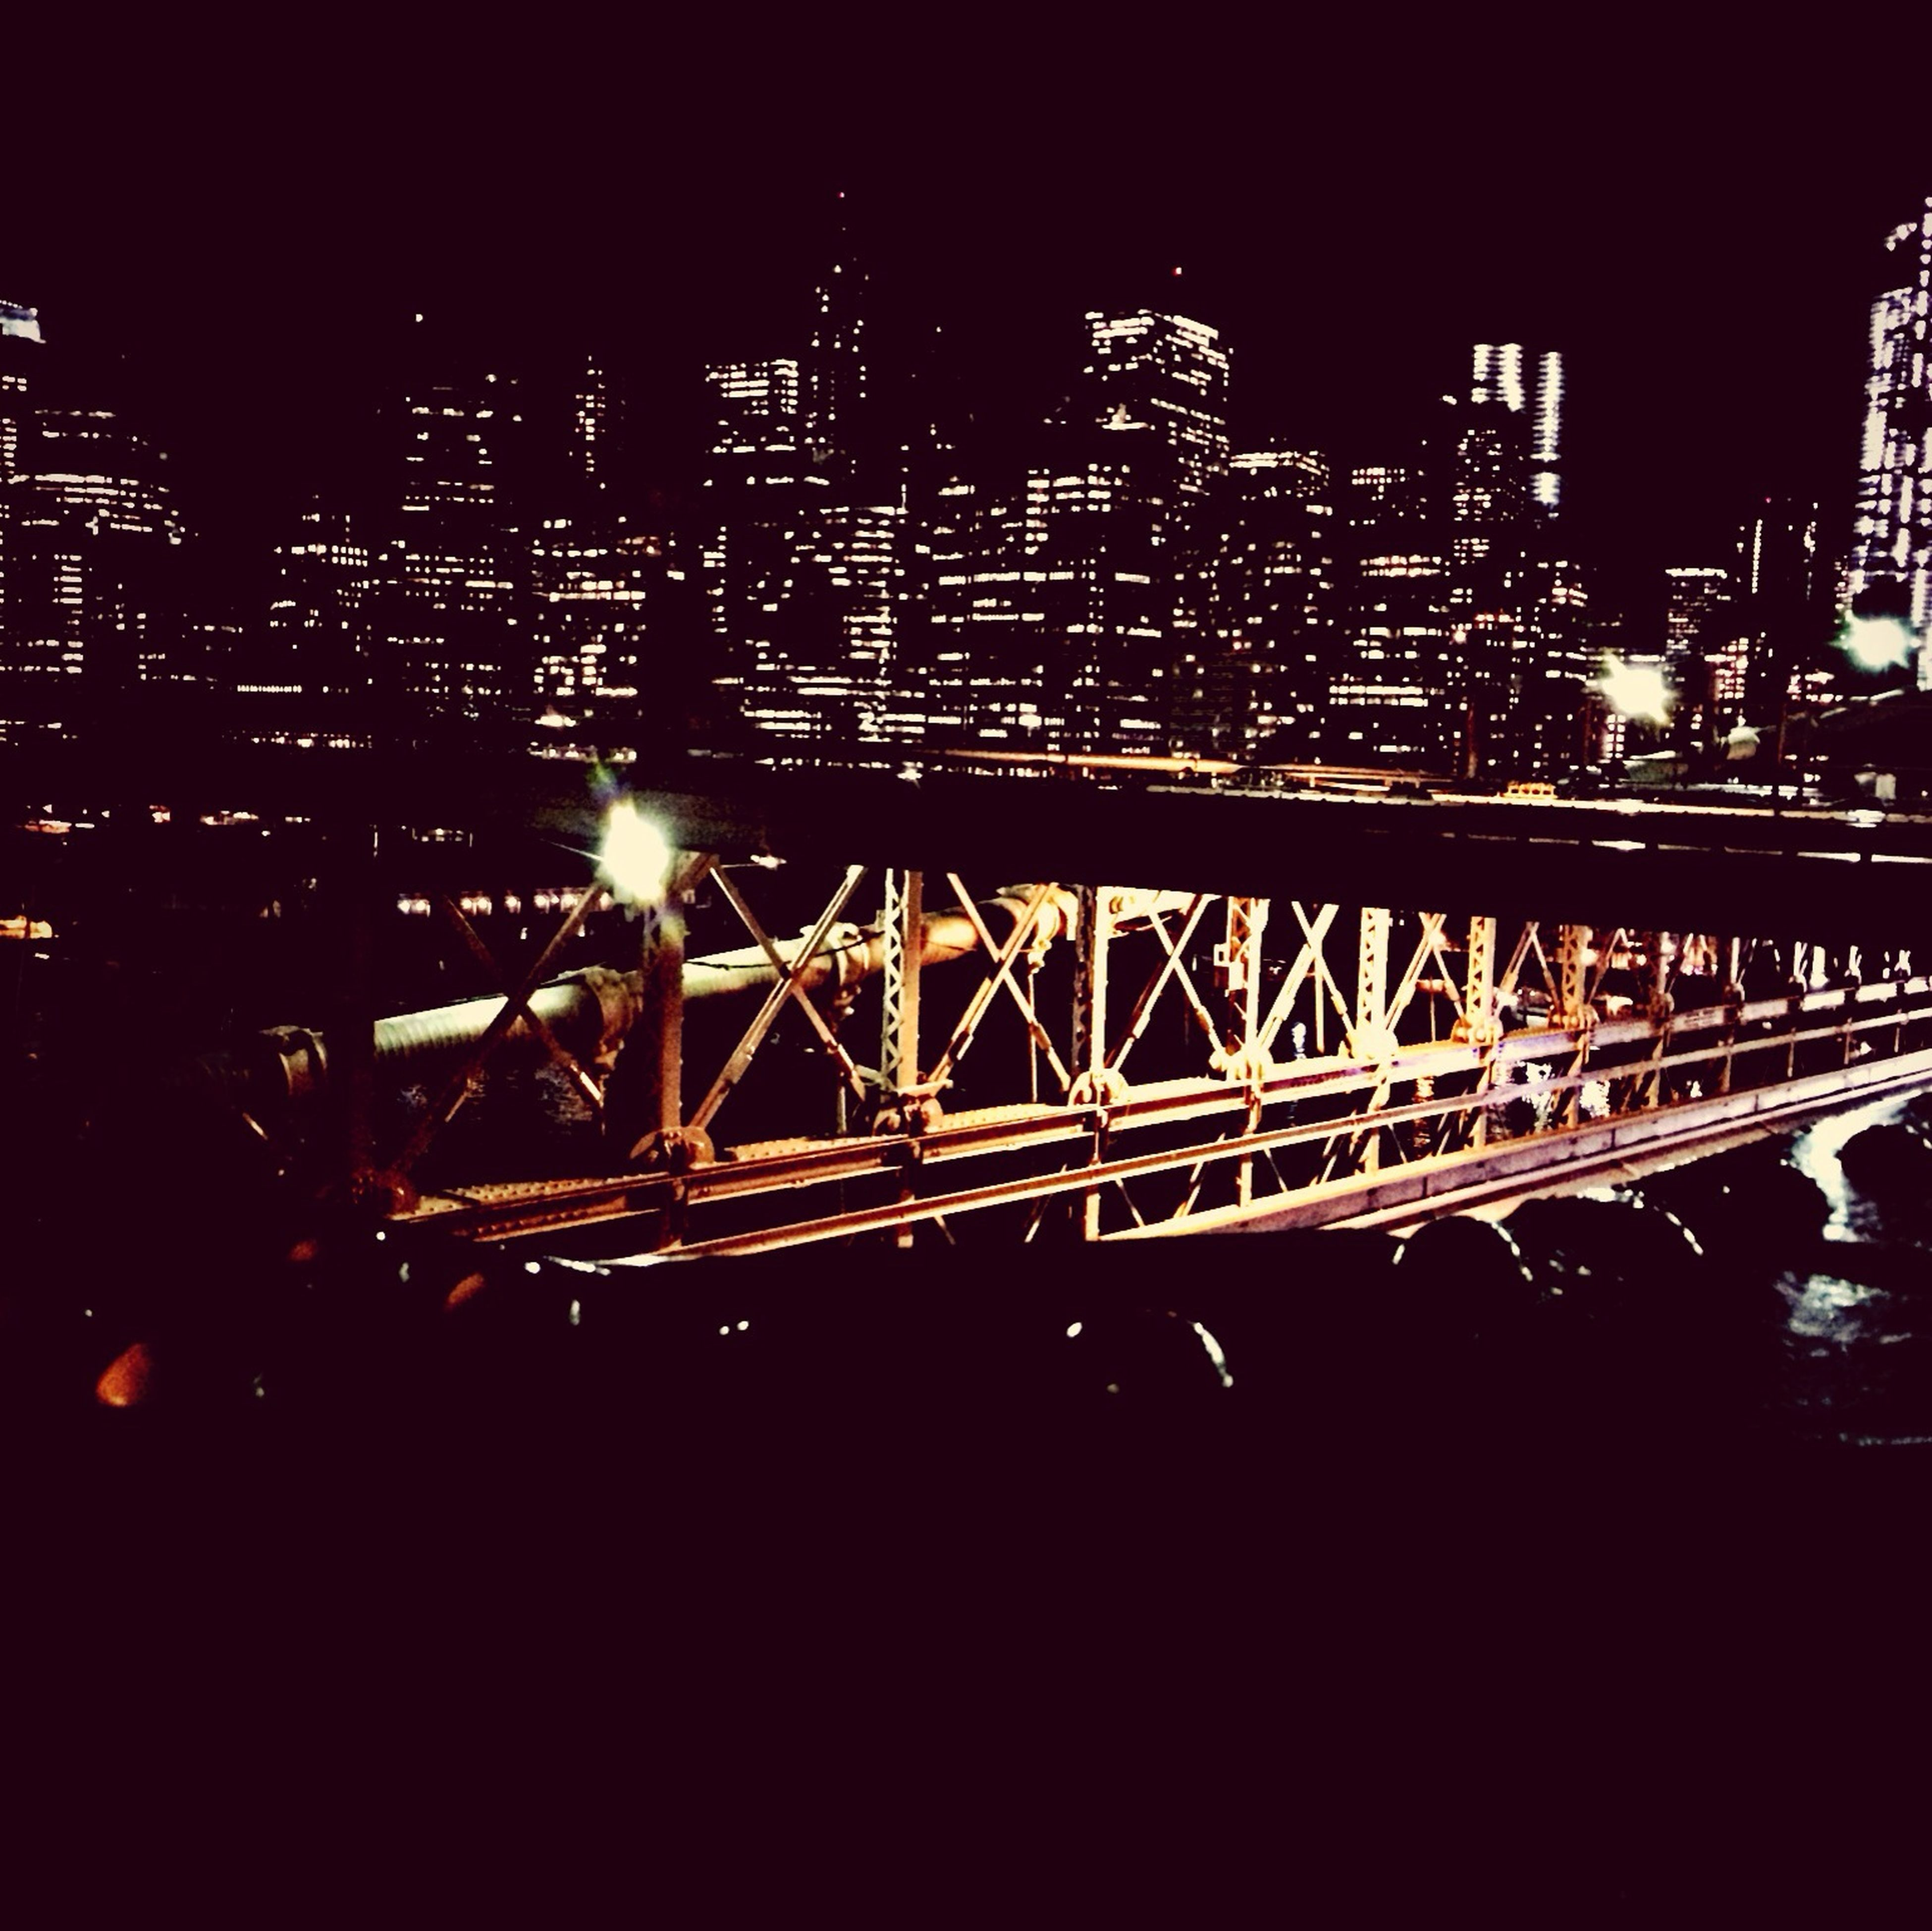 night, illuminated, architecture, city, built structure, building exterior, skyscraper, cityscape, modern, bridge - man made structure, transportation, connection, capital cities, tall - high, tower, city life, office building, engineering, travel destinations, urban skyline